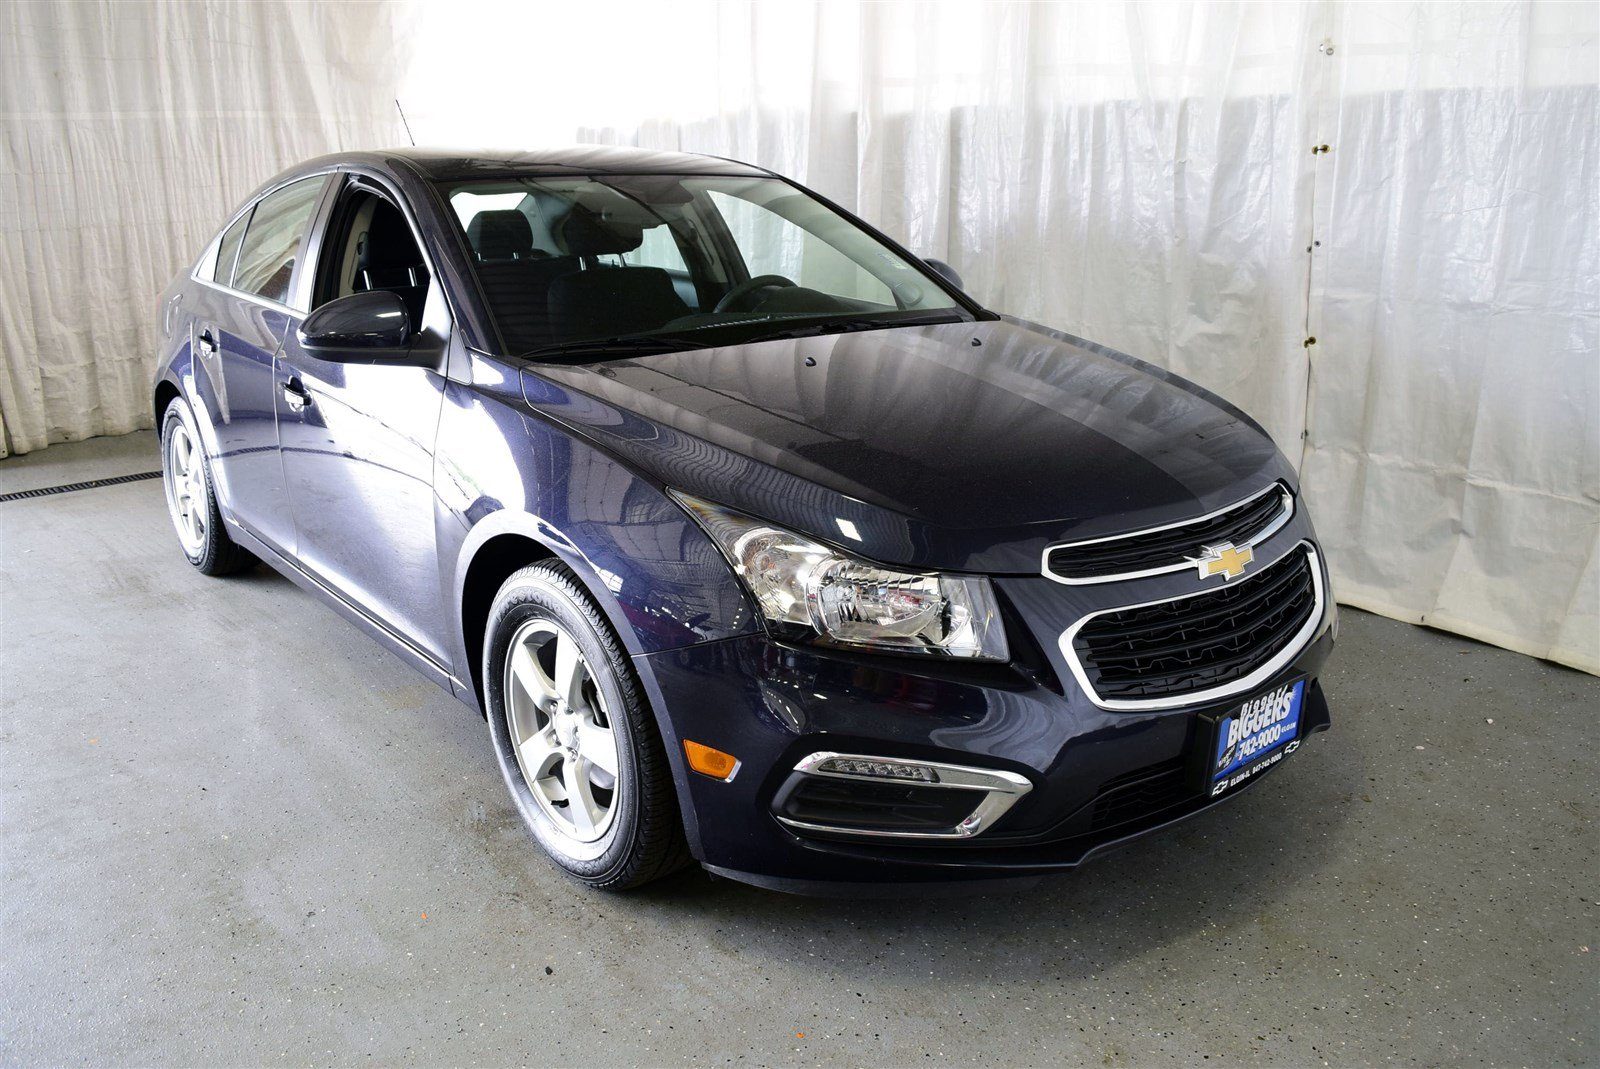 city north coast auto cleveland ohio limited used of lt revo mall chevrolet cruze